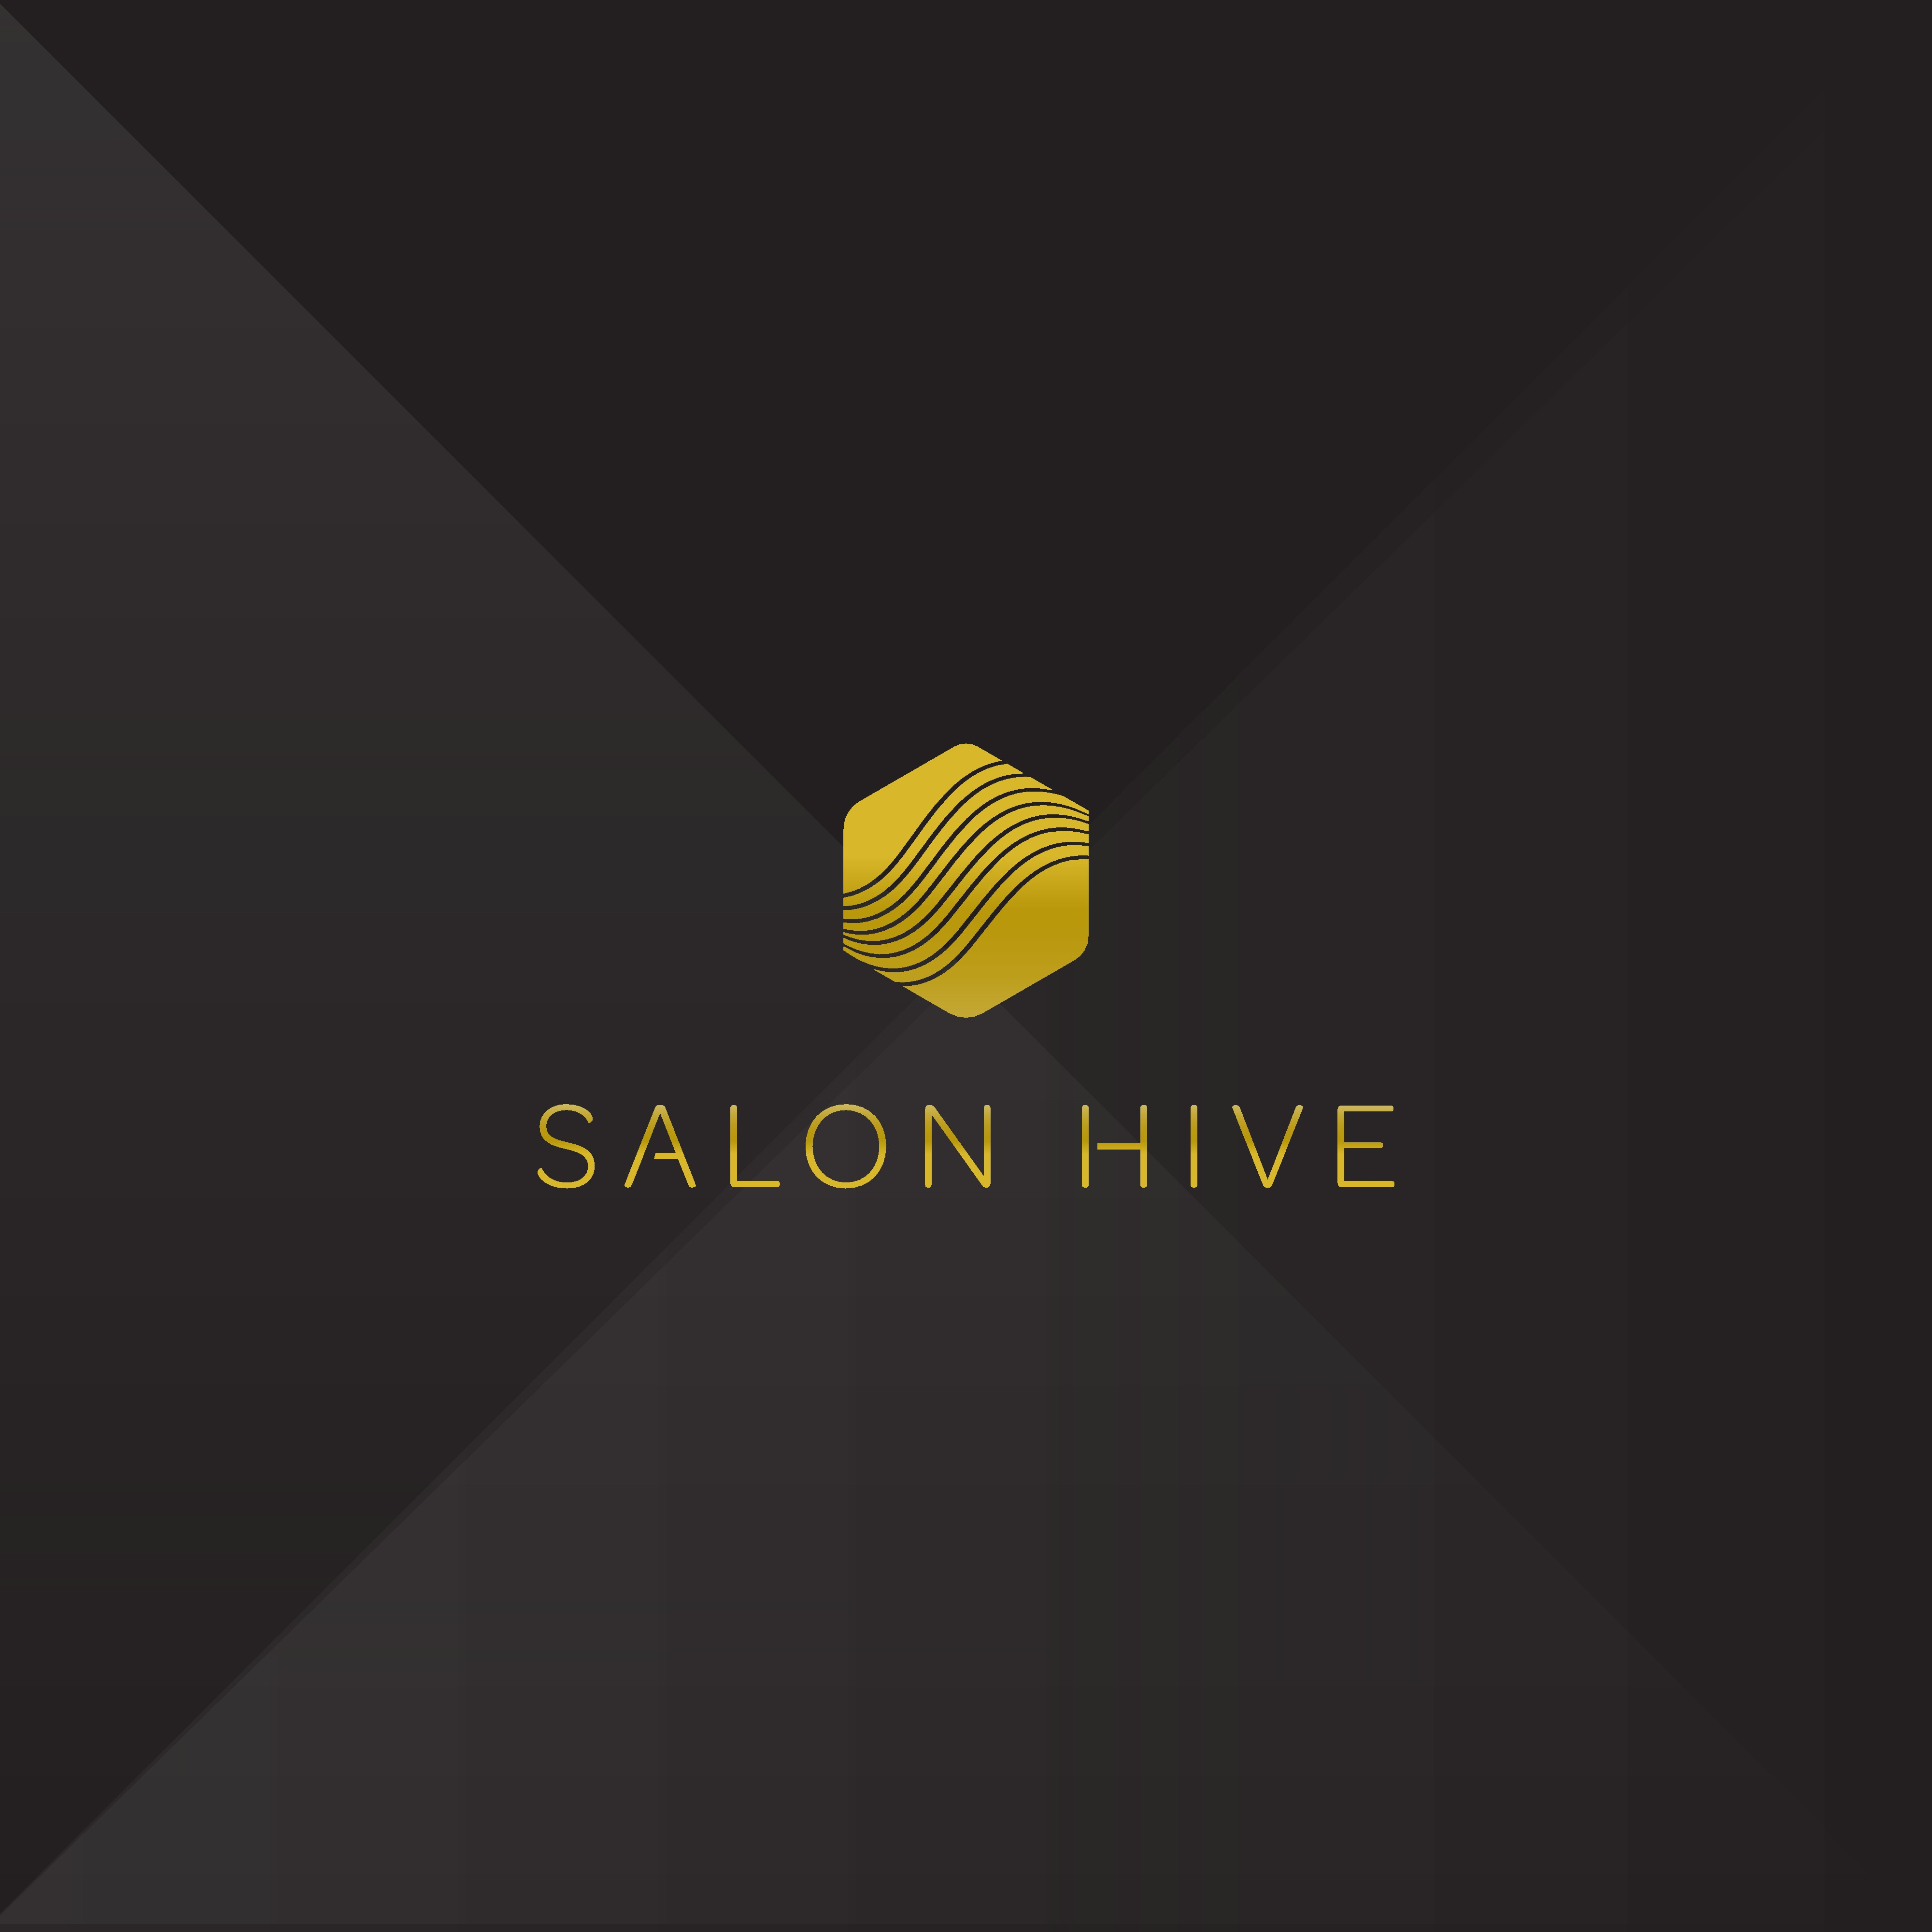 Create a logo and icon that will become synonymous with hairdressers all over the world.